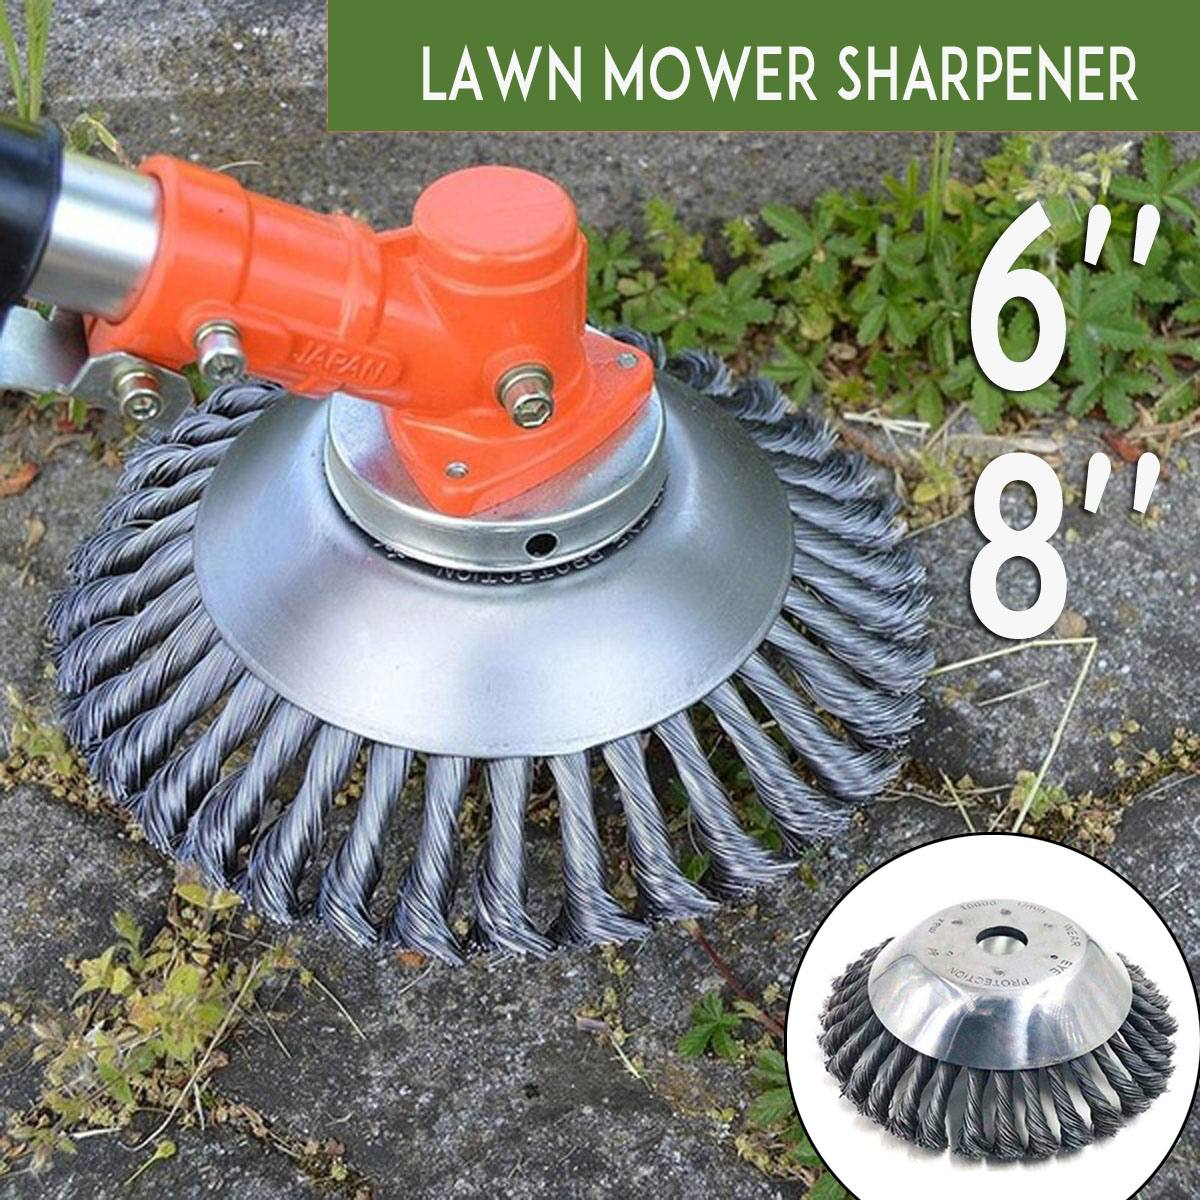 6 Inch /8 Inch Steel Wire Grass Trimmer Head Tray Brush Cutter Rotary Wheel Edge Head Dust Removal Safe For Lawn Mover Part Tool